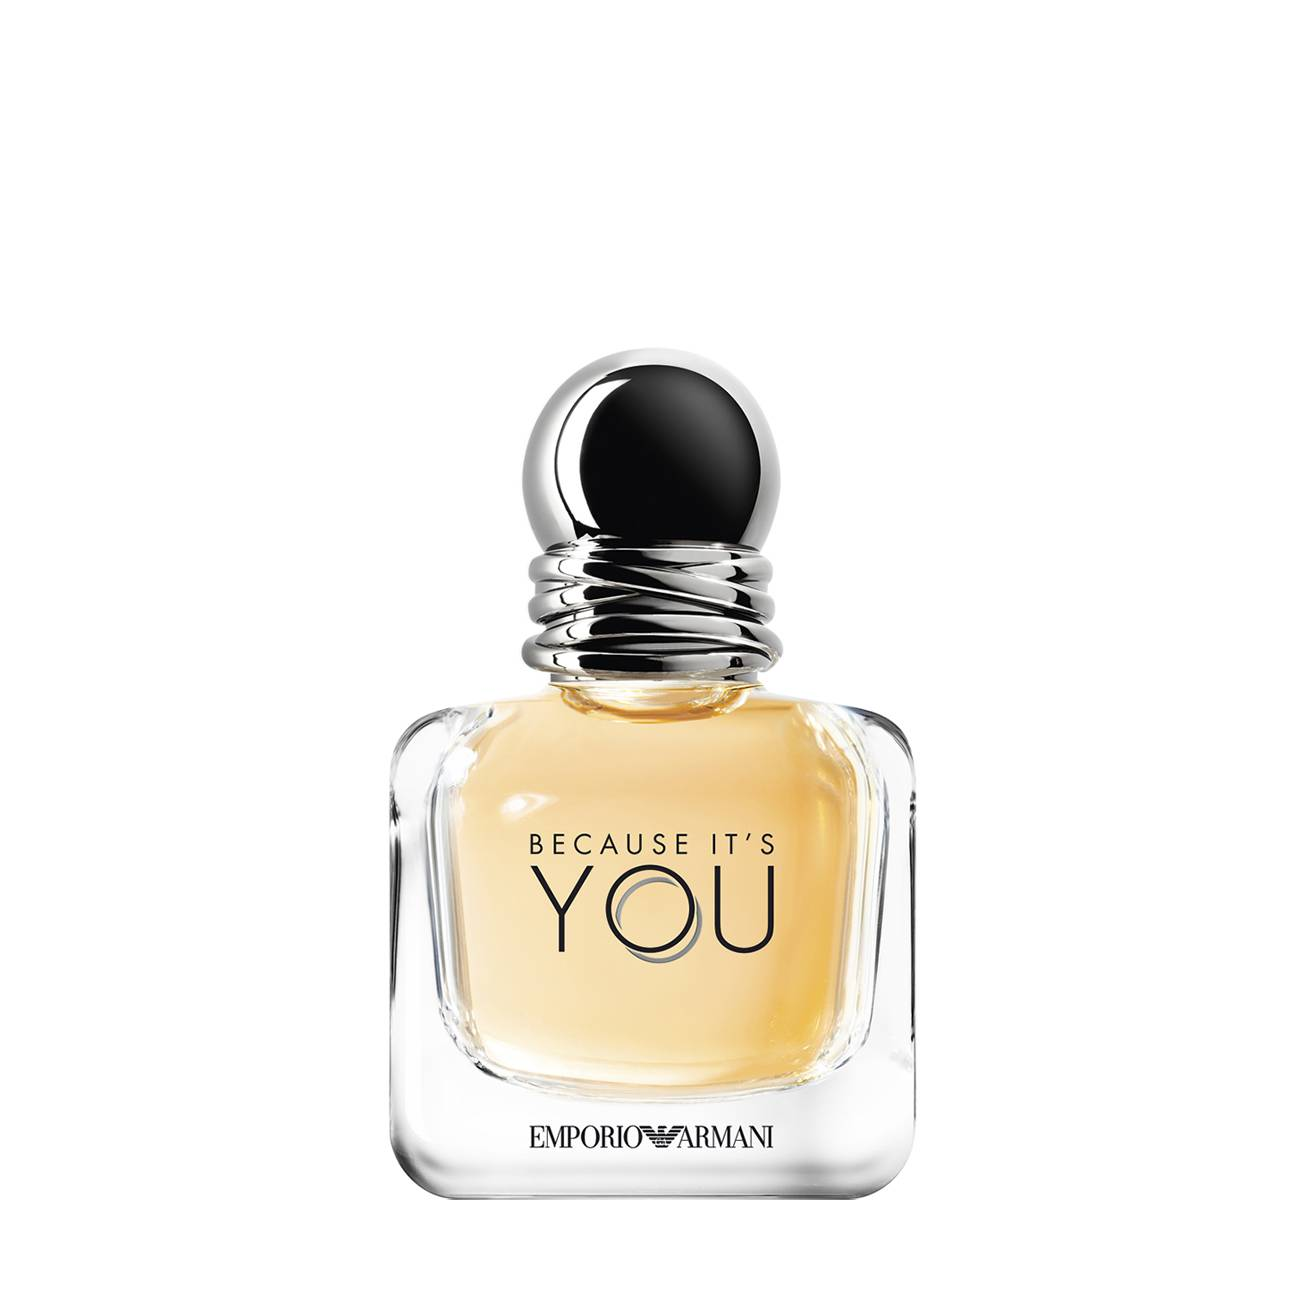 BECAUSE IT'S YOU 50ml